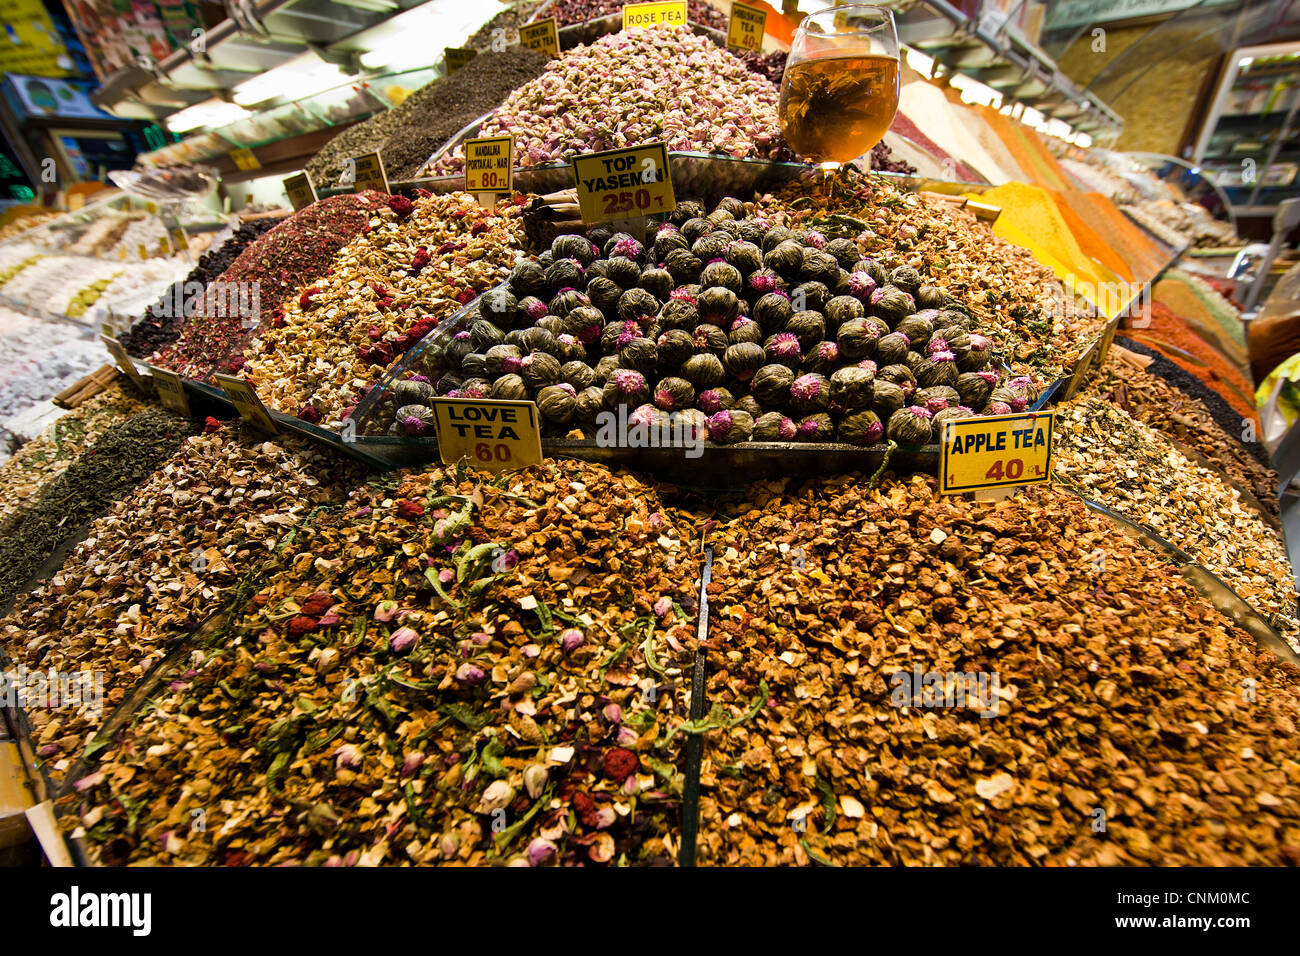 teas and spices at the Egyptian Bazaar, Istanbul, Turkey - Stock Image